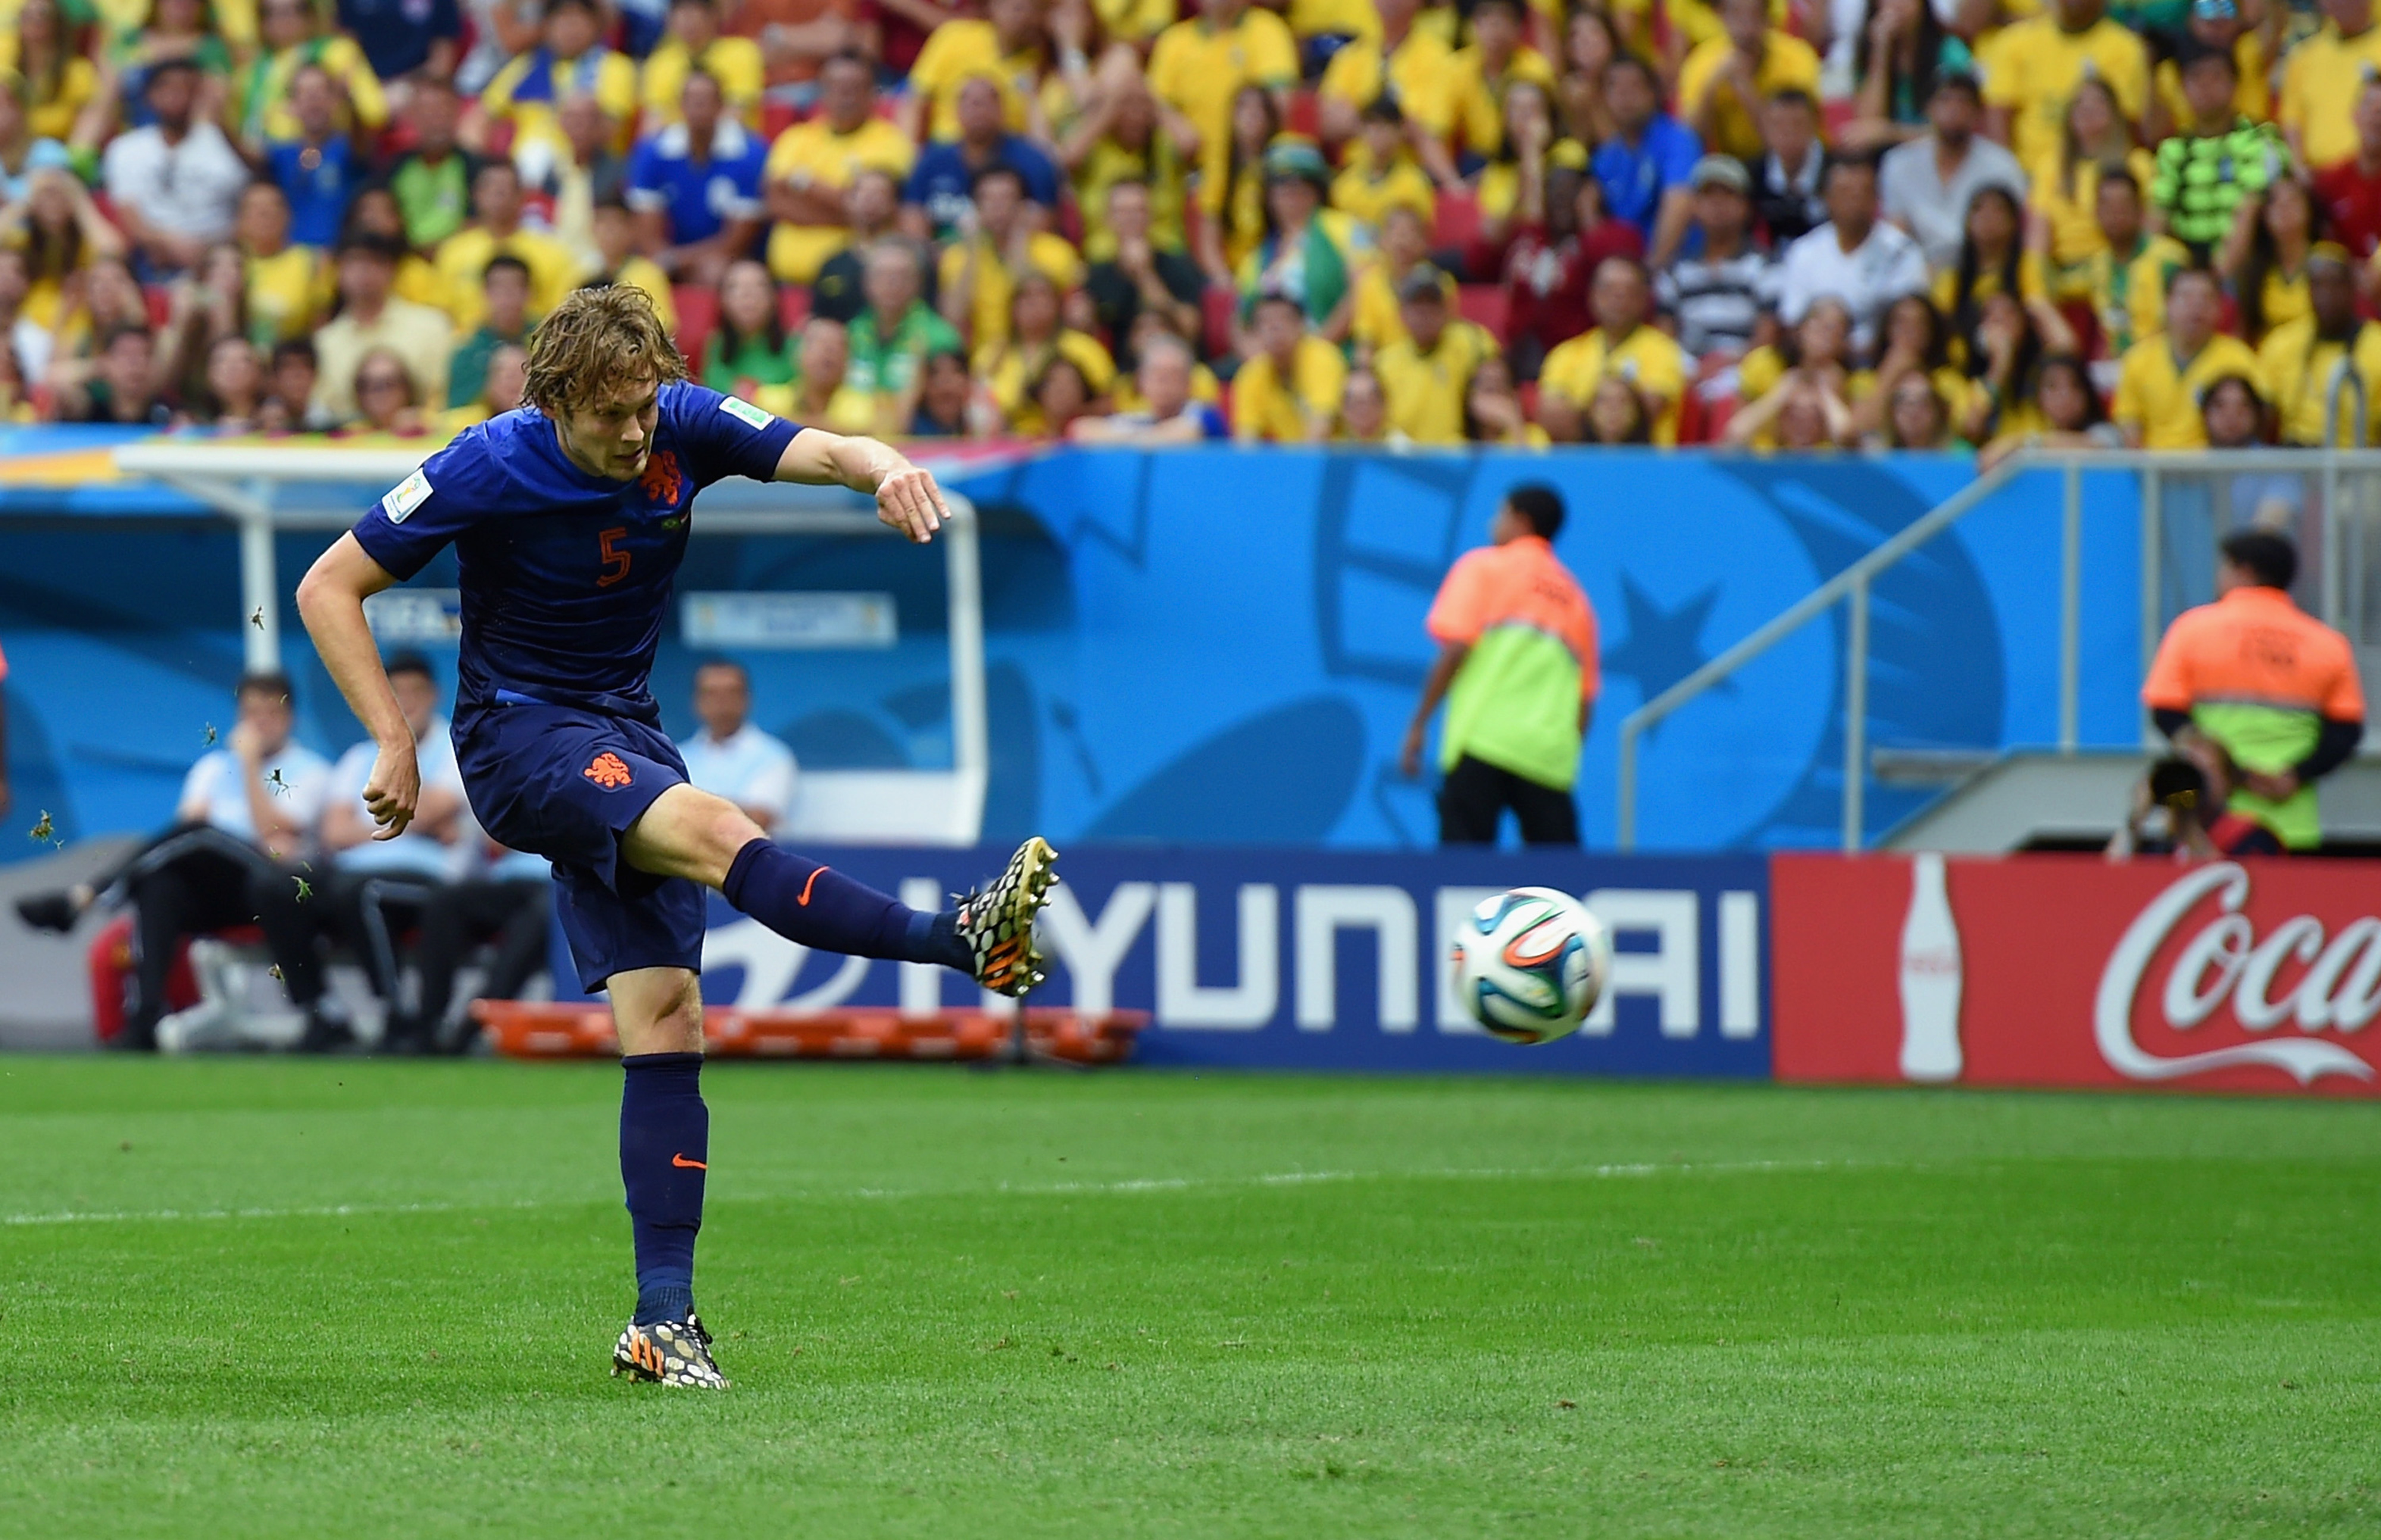 Daley Blind jabs the dagger into the Brazilian psyche.